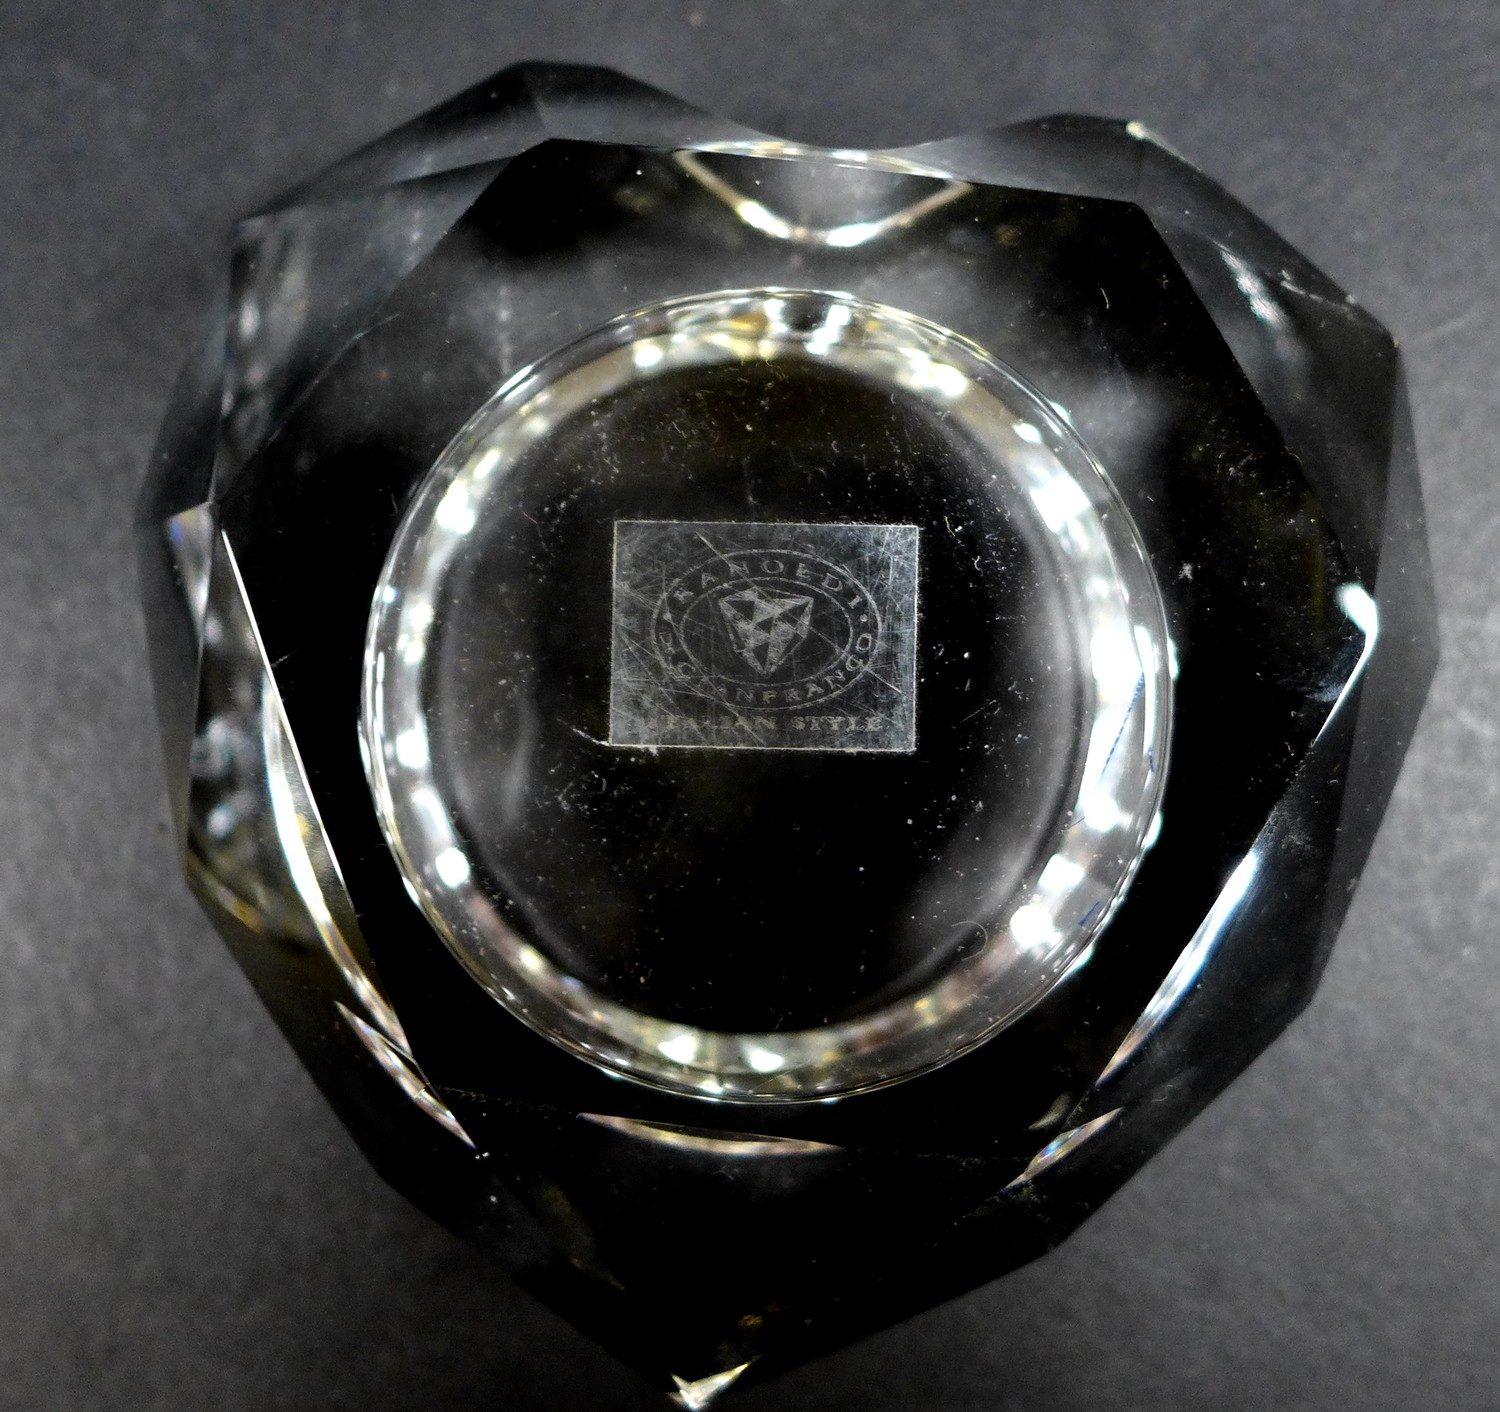 A collection of Waterford Crystal glass wares, including a shallow bowl, 26.5 by 7cm, pedestal bowl, - Image 8 of 12